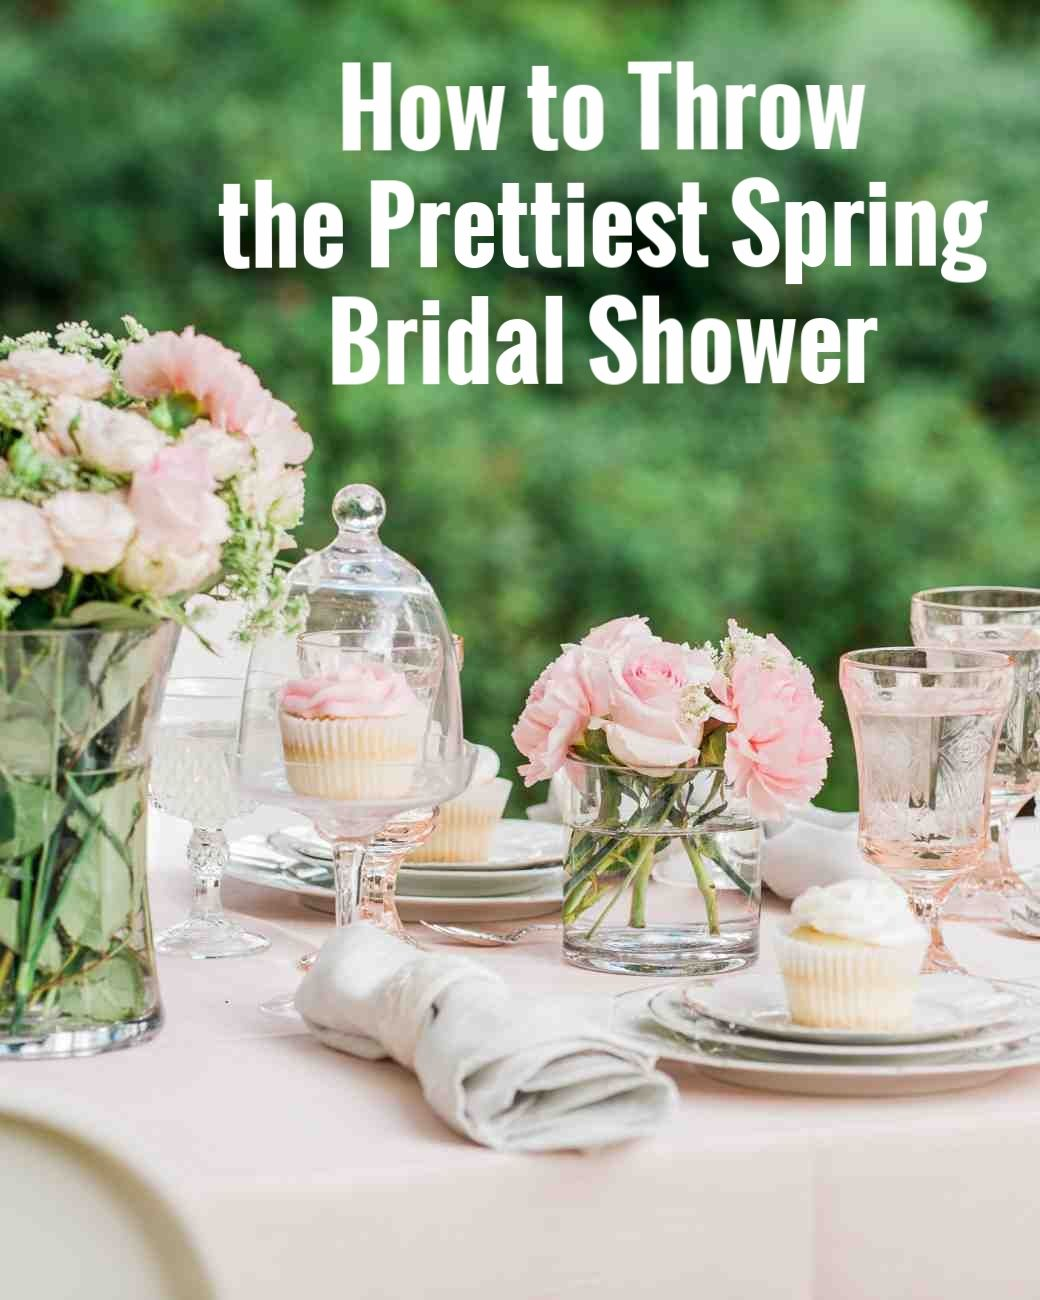 how to throw the prettiest spring bridal shower martha stewart weddings amanda s gluck founder of the style blog fashionable hostess is sharing her